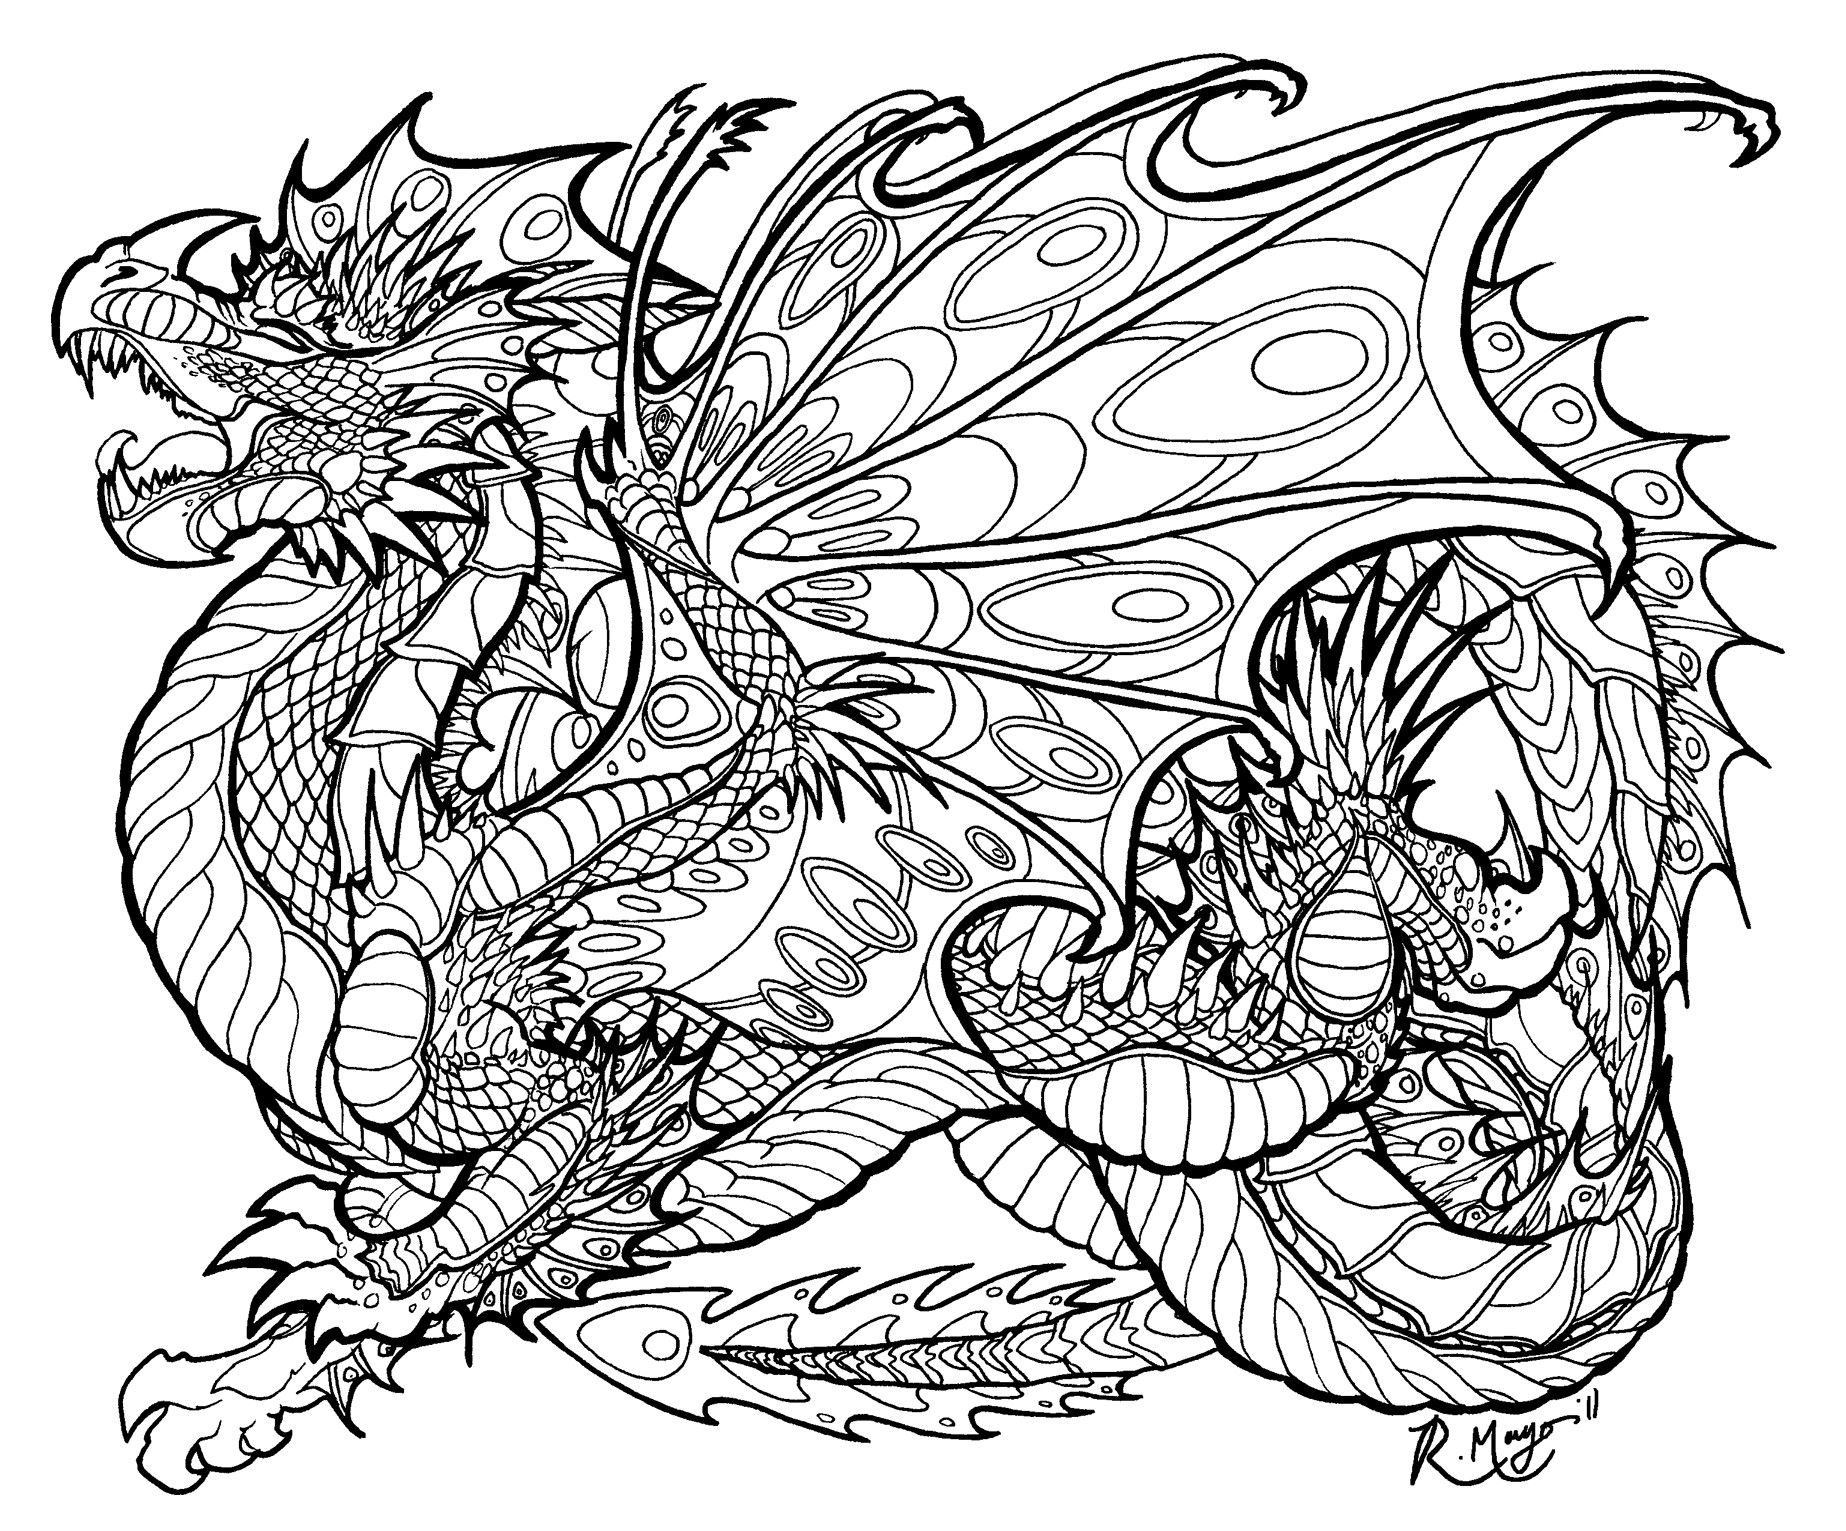 Dragon Coloring Pages Realistic Coloring Pages Dragon Coloring Page 12 Peoples Fantasy Free Dragon Coloring Page Coloring Pages Coloring Pages To Print